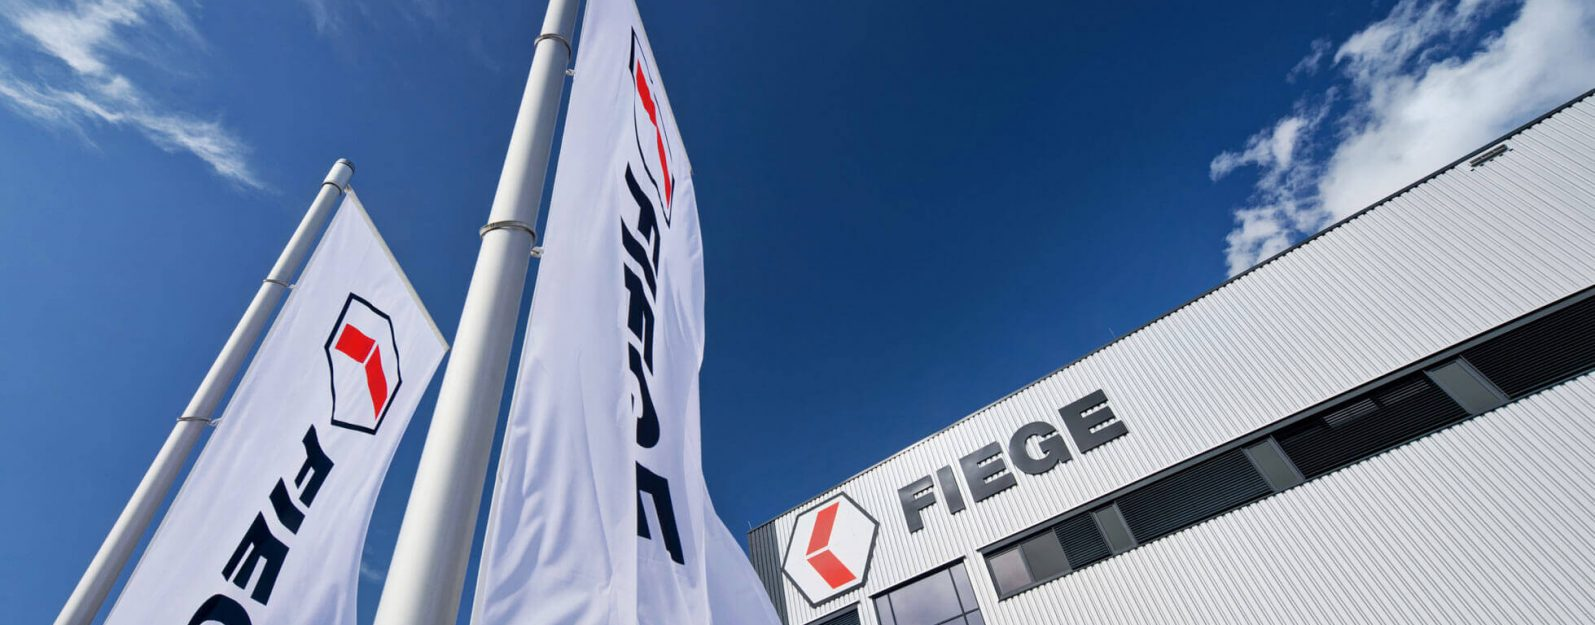 fiege logistics | pioneer of contract logistics - our product, Einladung